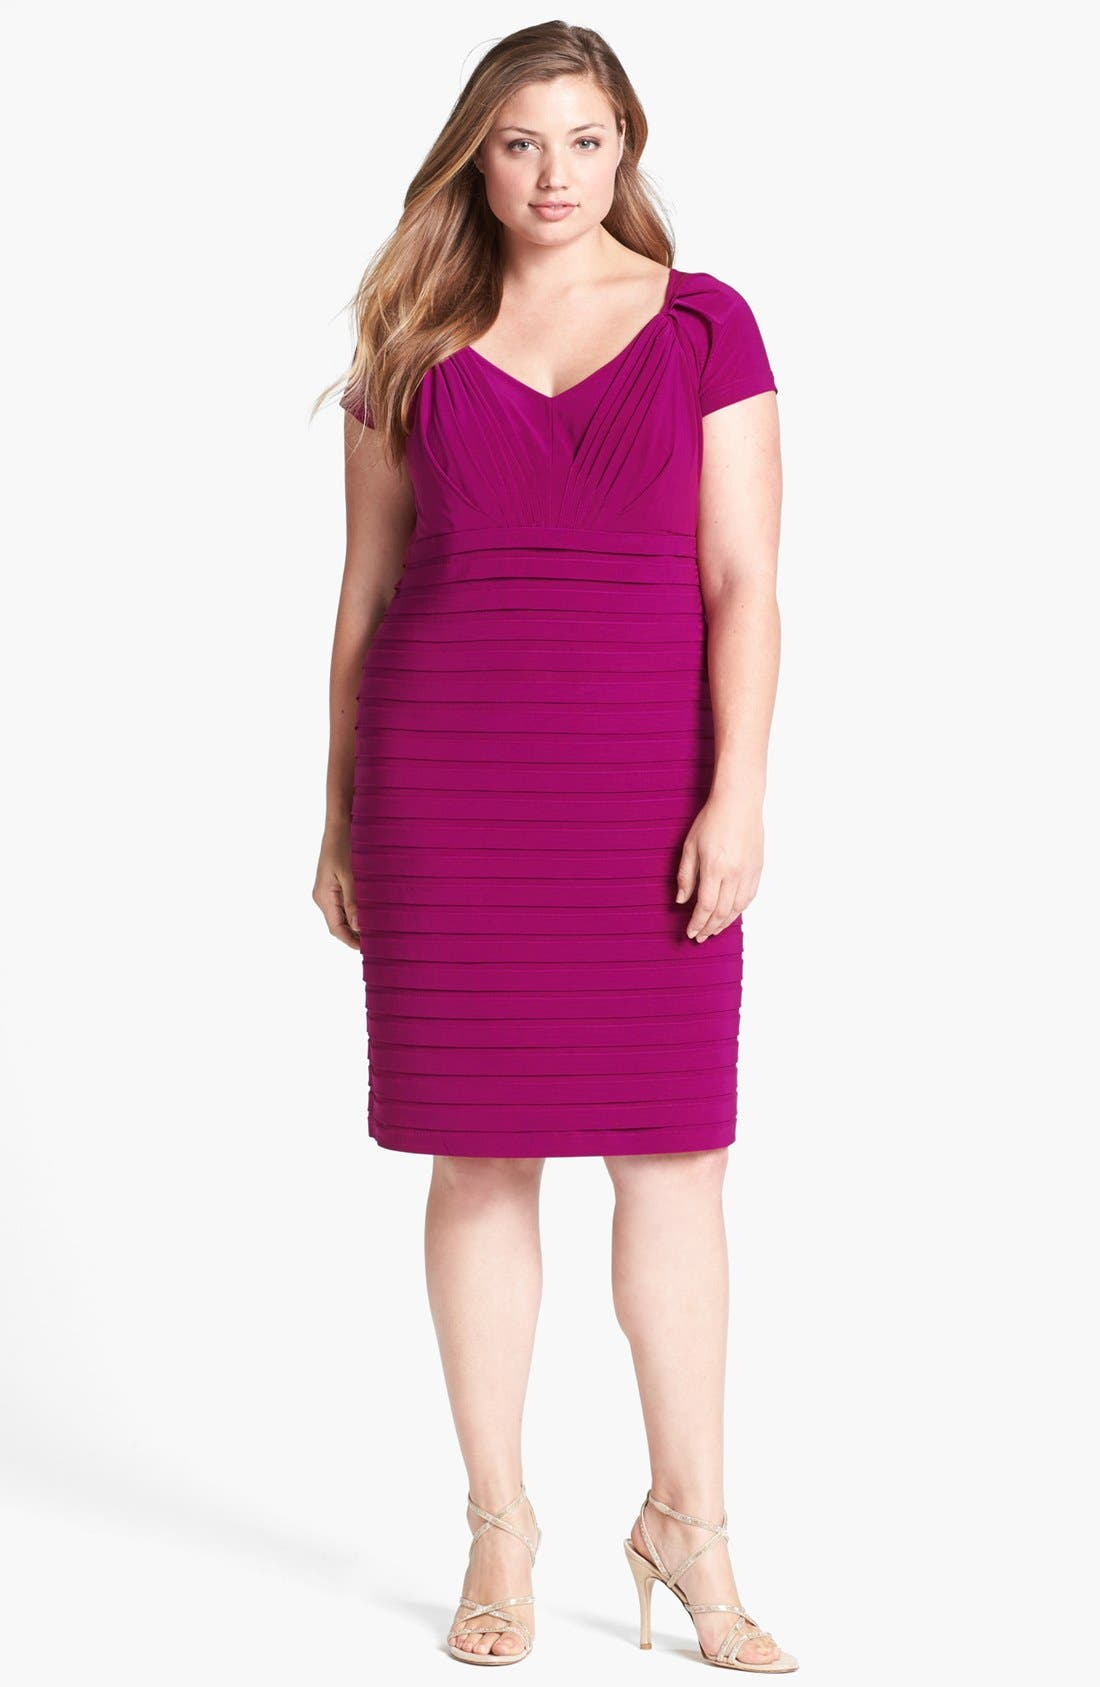 Alternate Image 1 Selected - Adrianna Papell Shutter Pleat Sheath Dress (Plus Size)